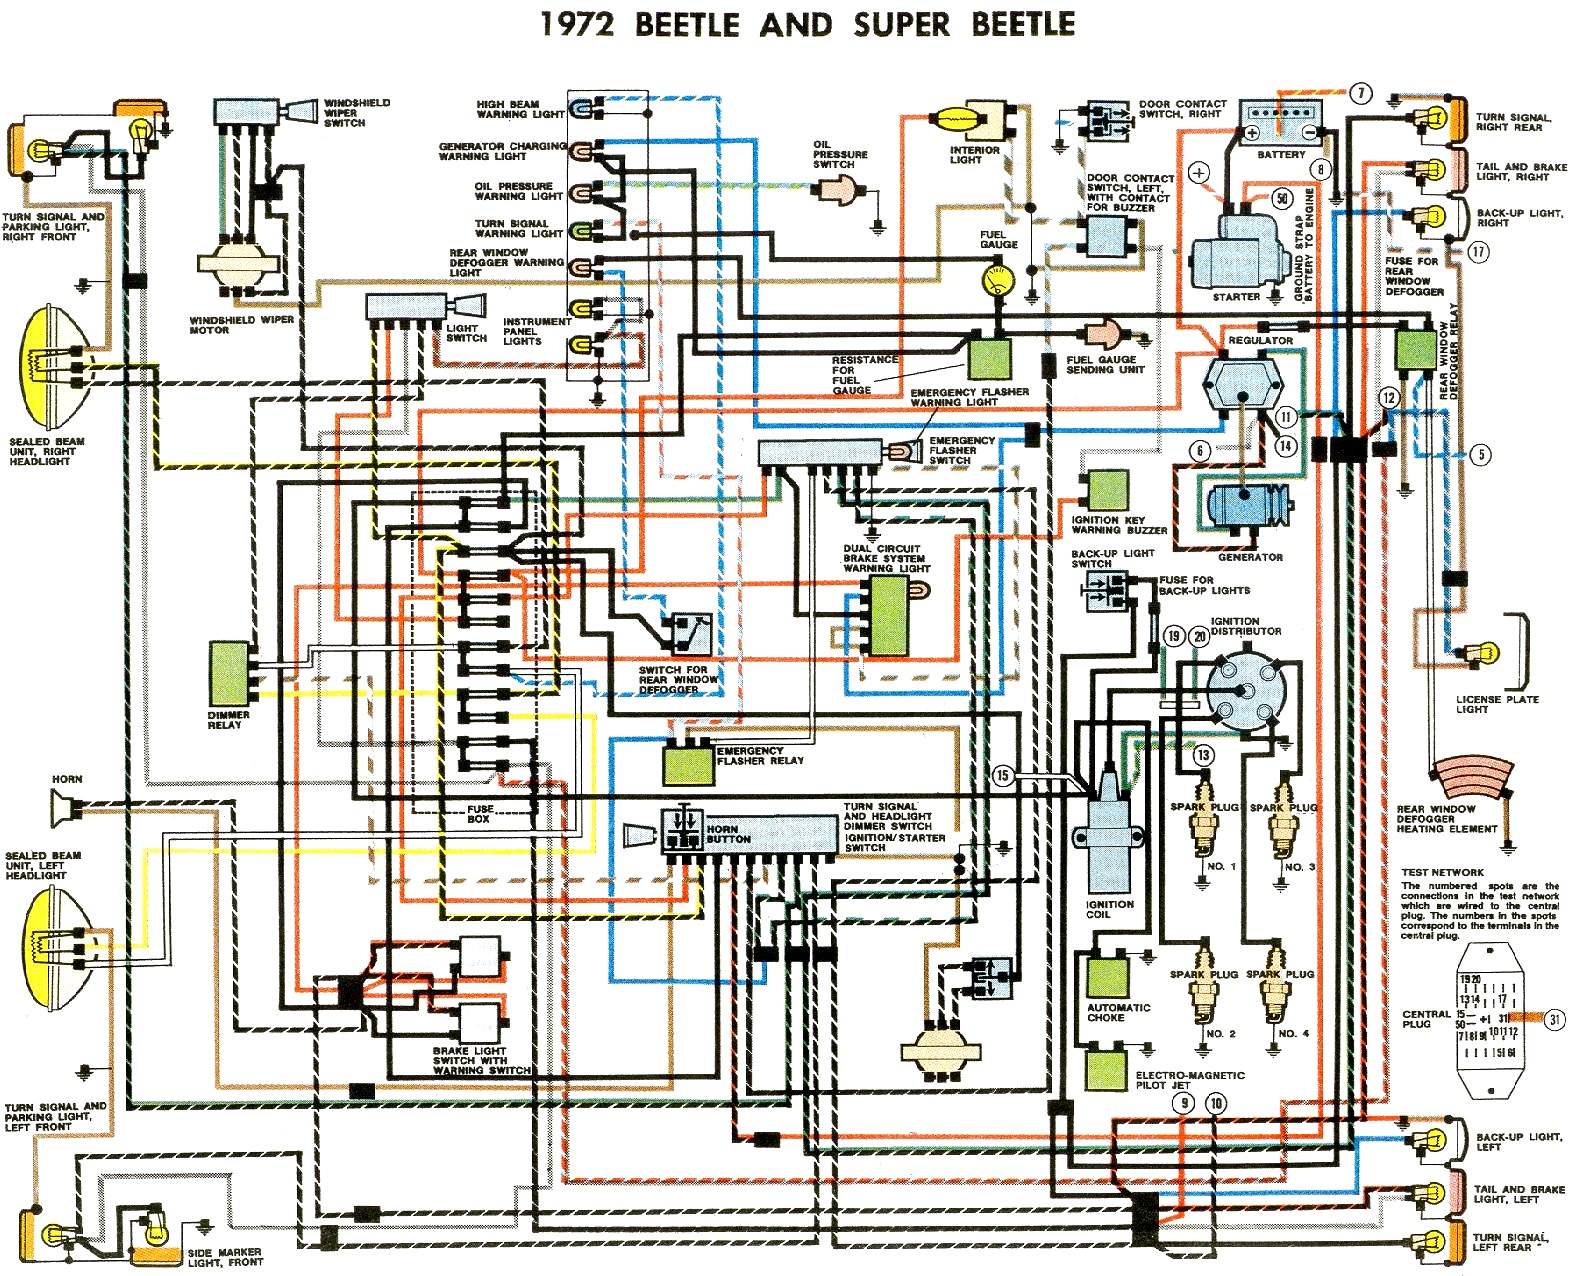 1978 Club Car Wiring Diagram Schematic Archive Of Automotive Electric 1963 Vw Beetle Harness Auto Electrical Rh Psu Edu Co Fr Sanjaydutt Me